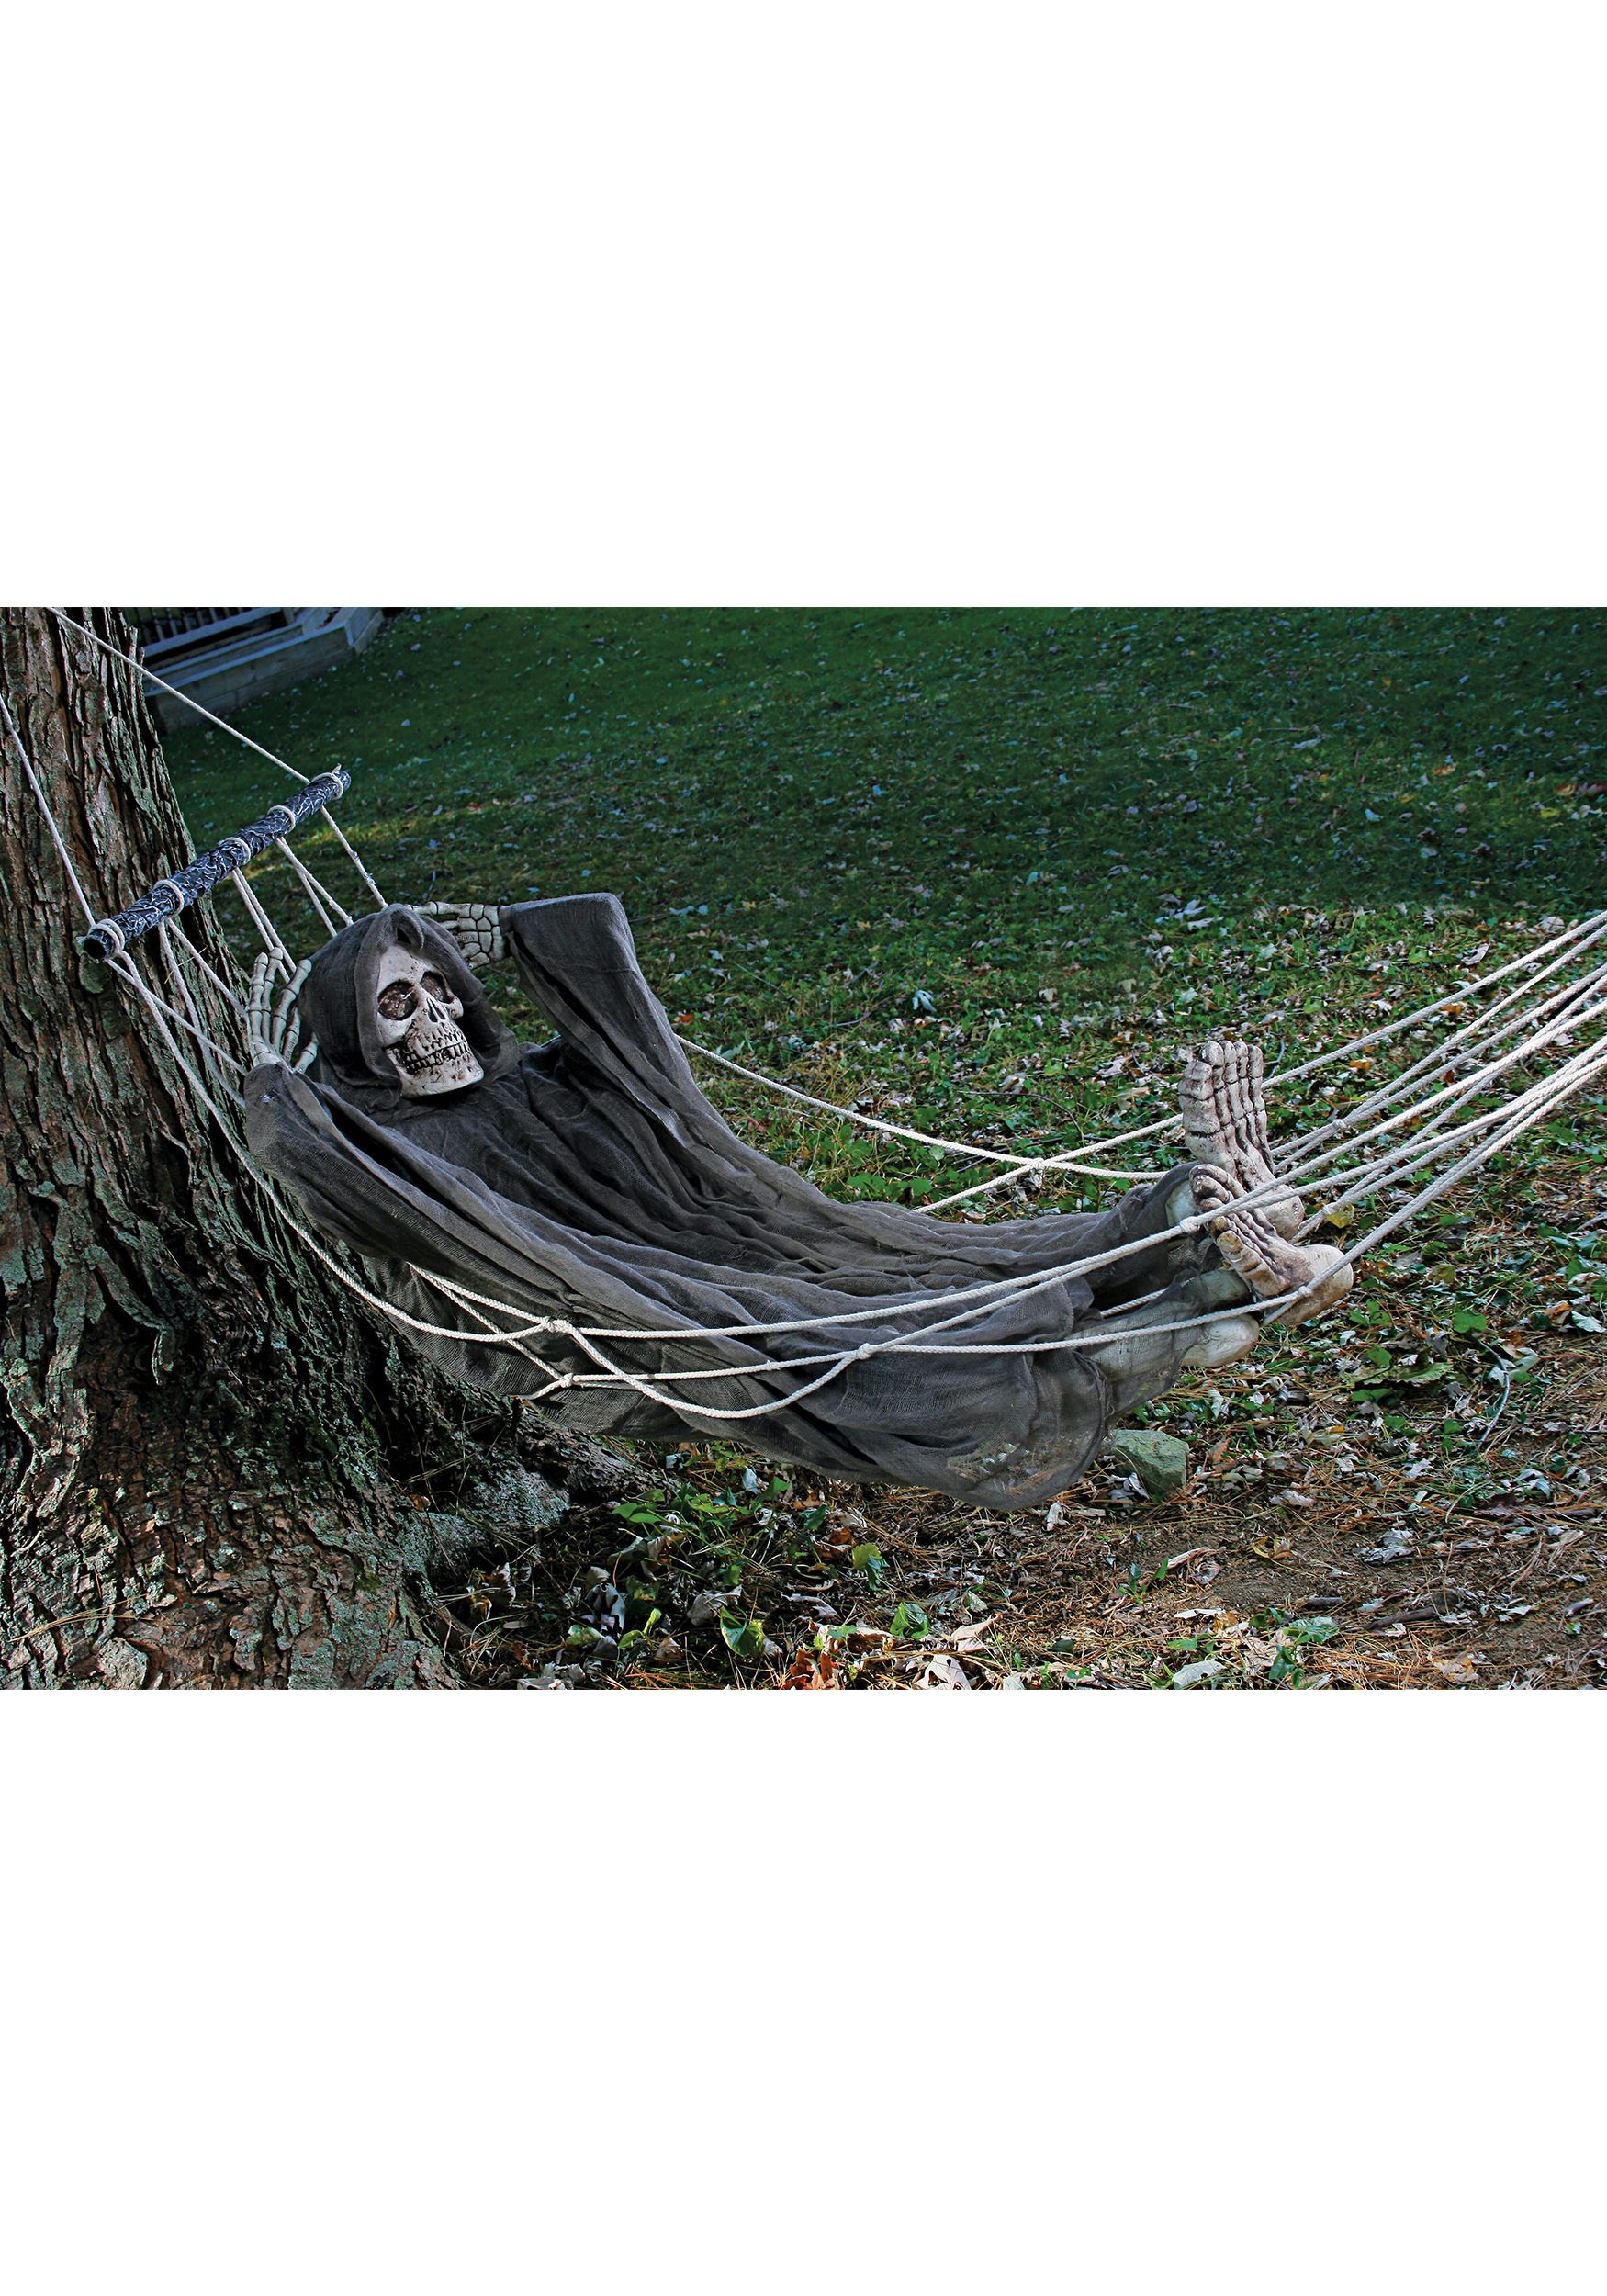 Skeleton Lazy Bones In Hammock 5 Halloween Scary Skull Party Decoration Prop Sointechile Cl